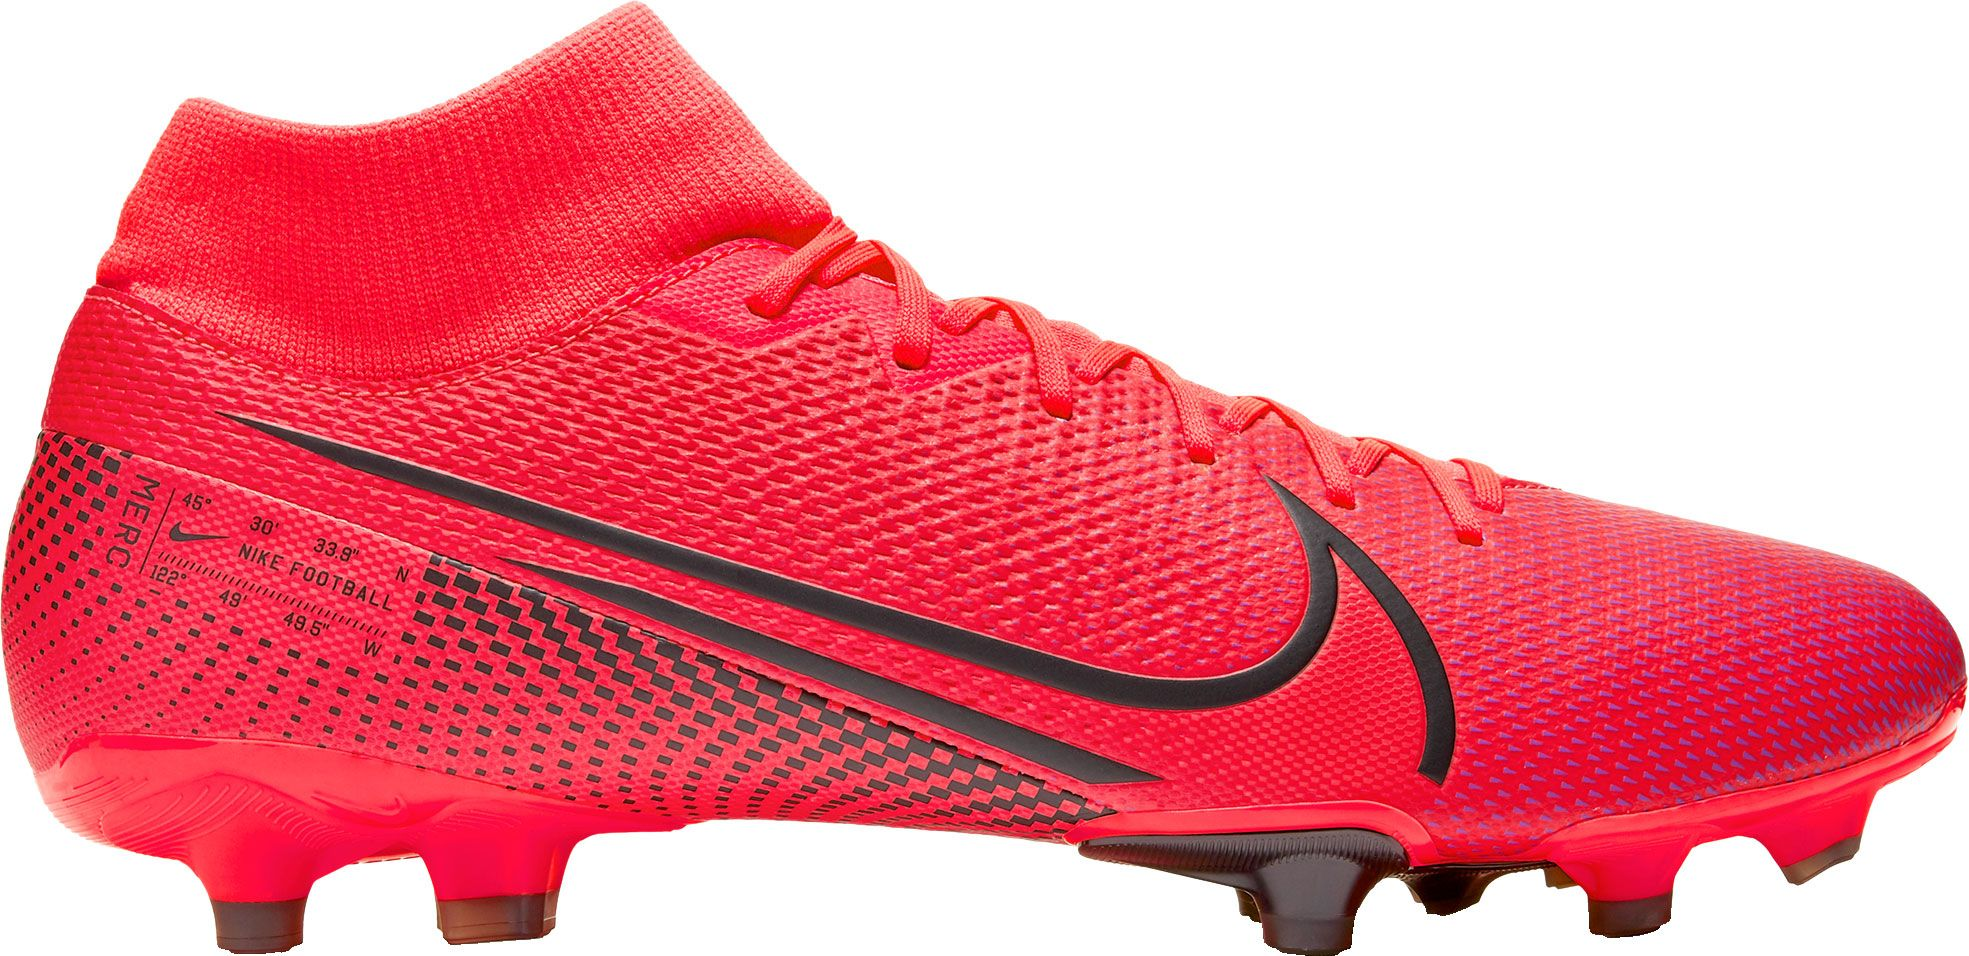 Nike Mercurial Superfly 7 Academy FG Soccer Cleats, Men's, Red